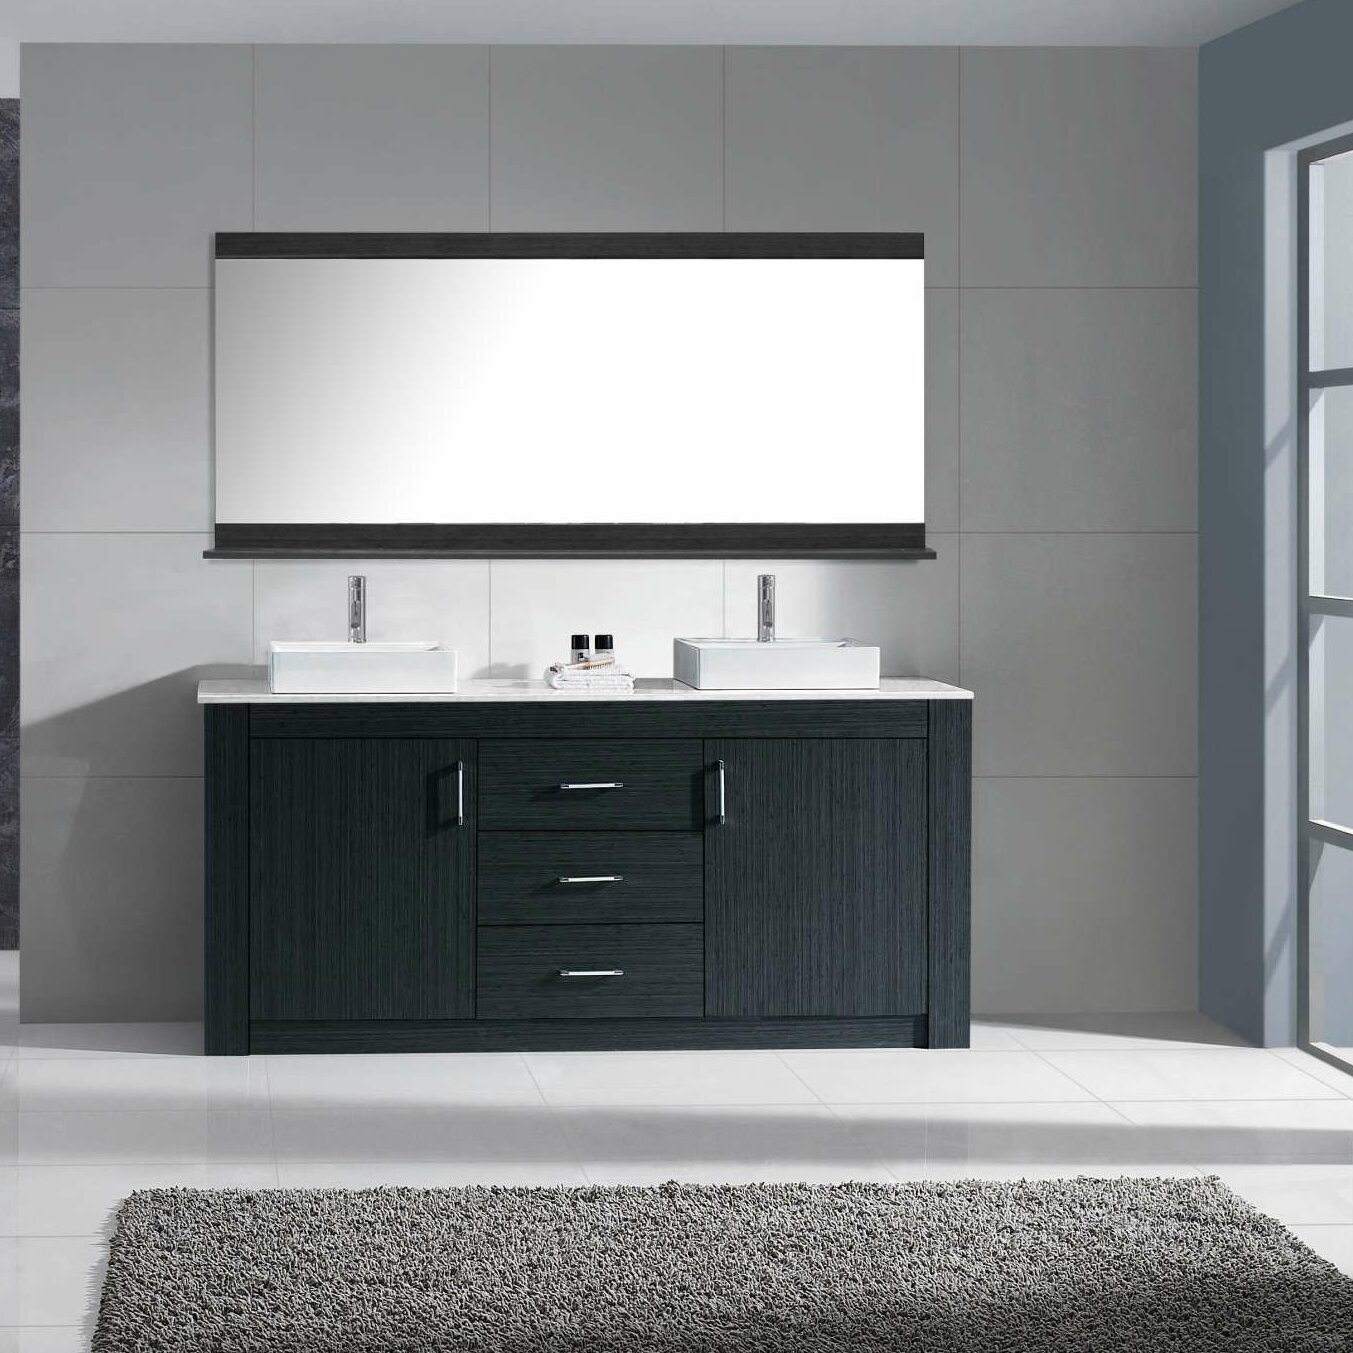 Tavian 60 Double Bathroom Vanity Cabi  Set With Mirror KD 90060 S GR VTU2270 on kd kitchens and bath